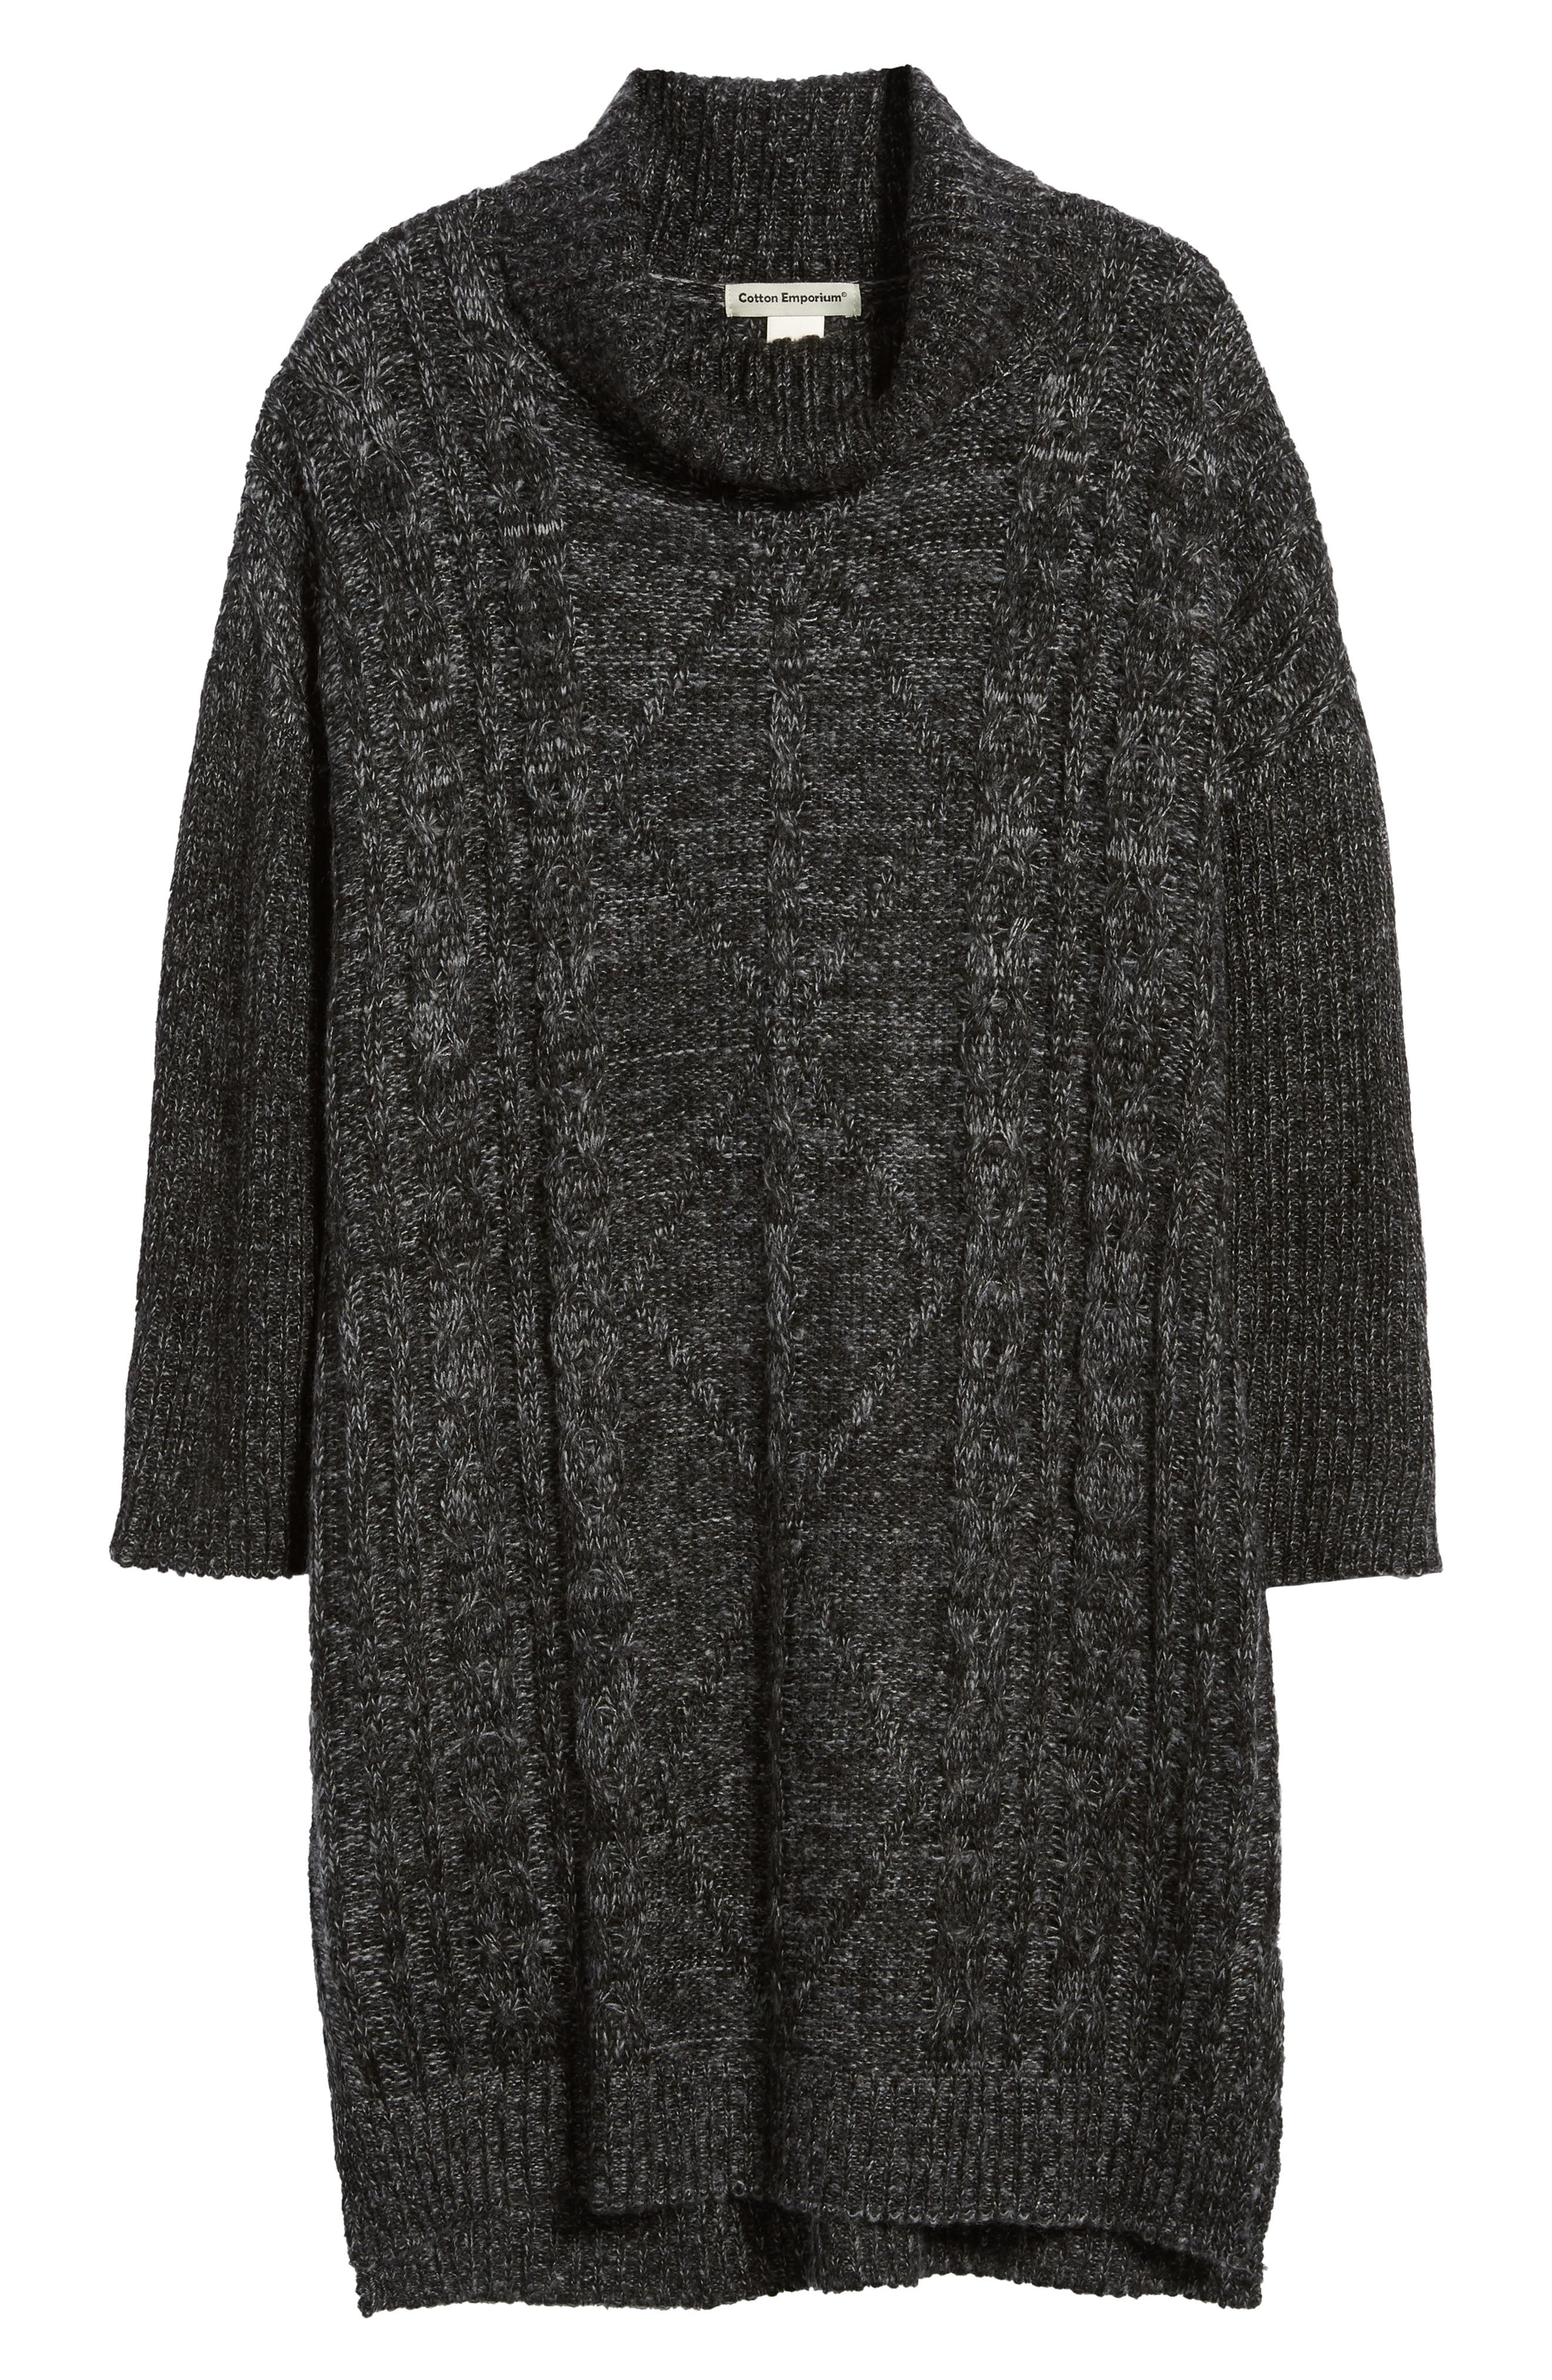 Chunky Turtleneck Sweater Dress,                             Alternate thumbnail 6, color,                             Charcoal